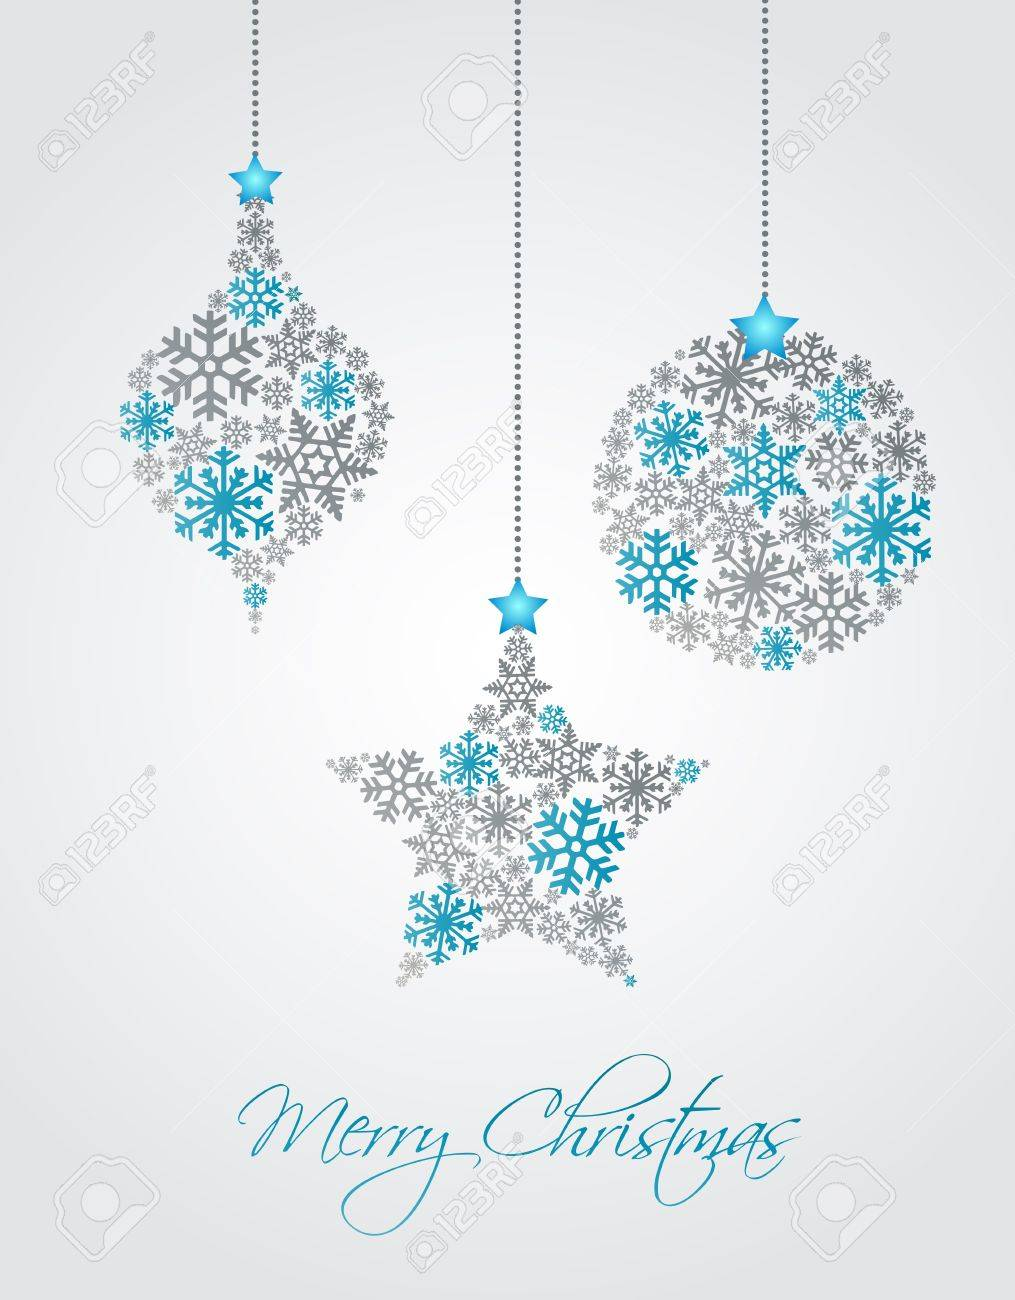 Christmas ornaments made from snowflakes vector illustration Stock Vector - 15704244